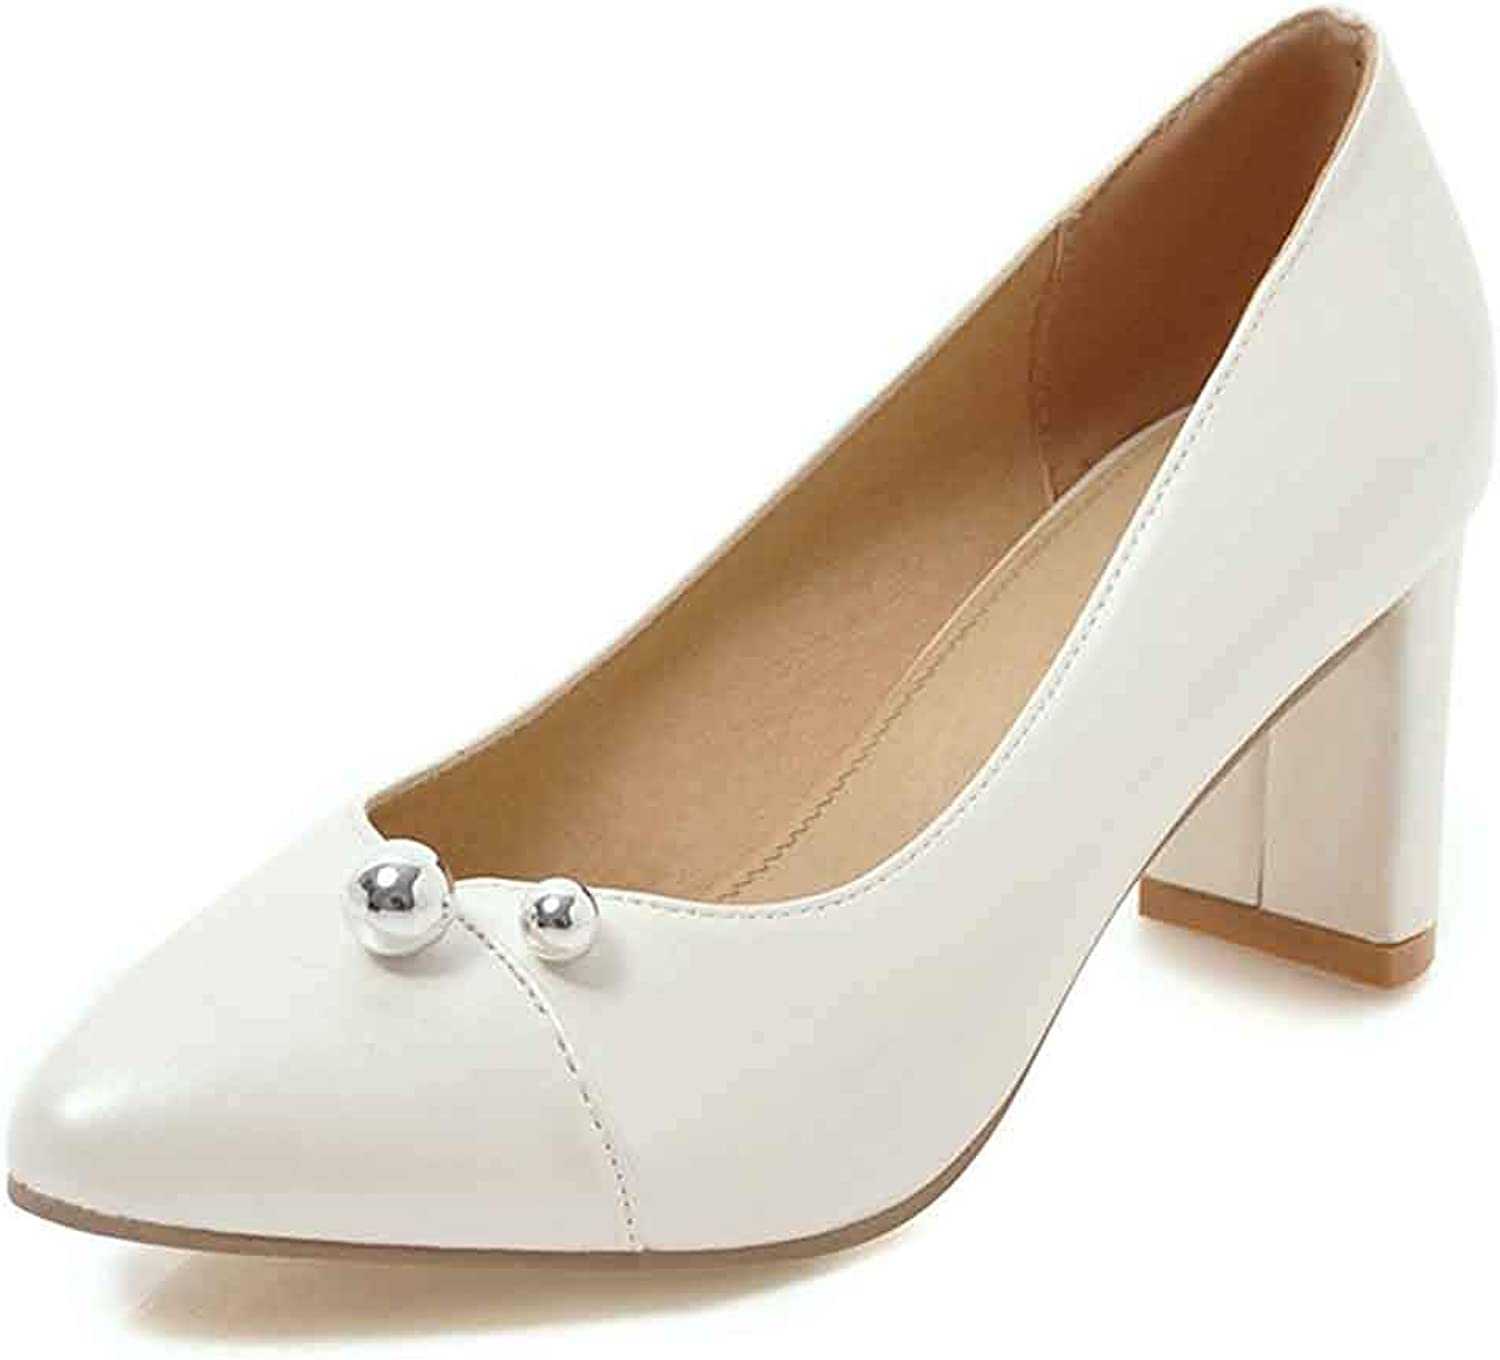 Unm Women's Sexy Pumps shoes with Beads - Simple Middle Block Heels - Trendy Pointed Toe Slip On Low Cut